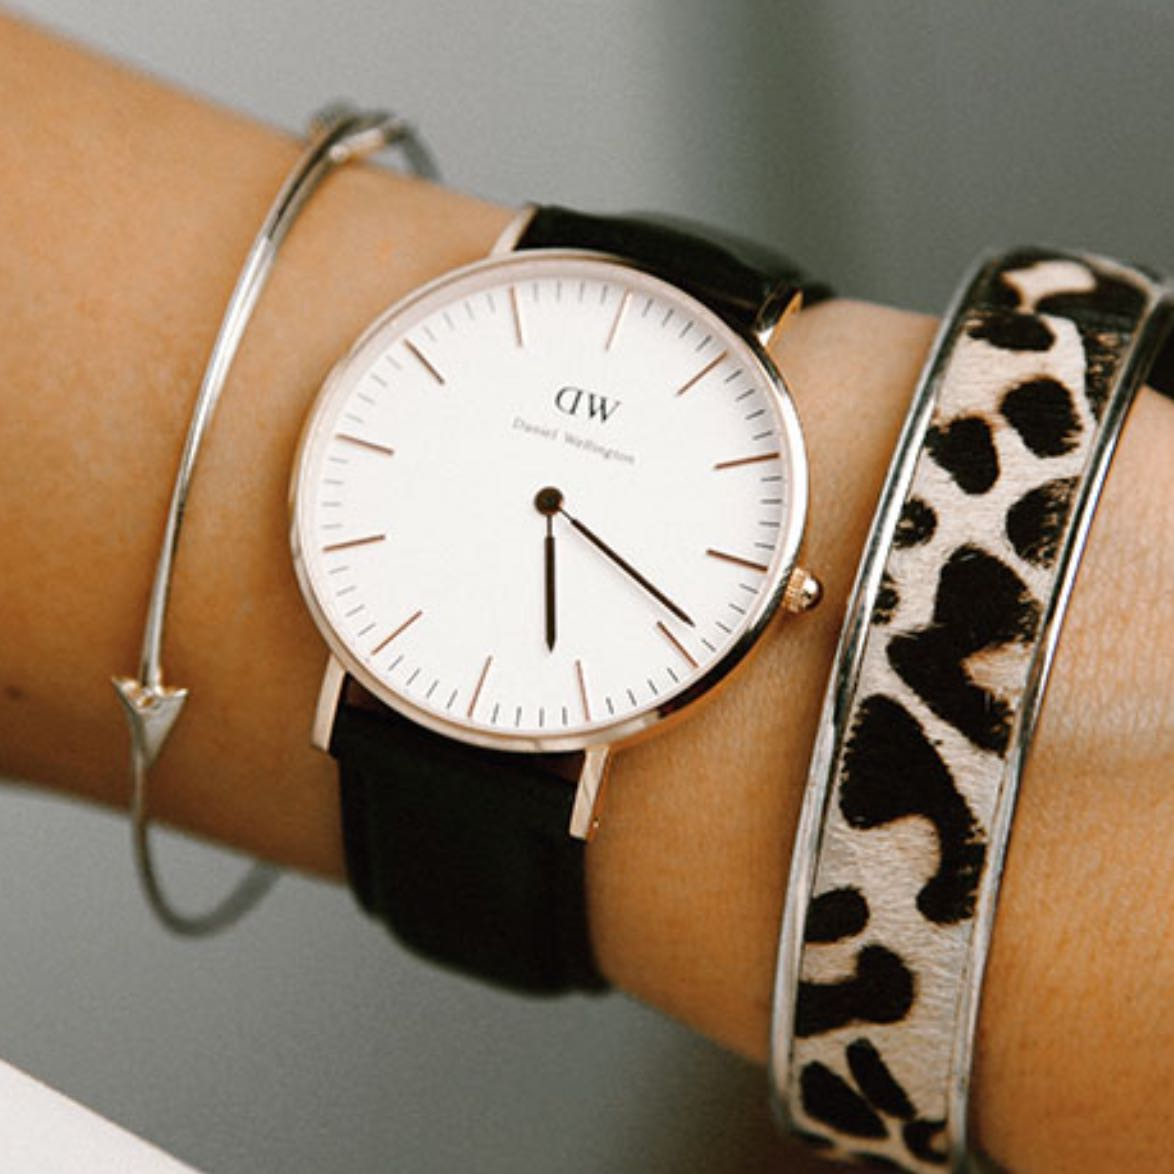 daniel wellington uhr kombinieren mode schmuck fashion. Black Bedroom Furniture Sets. Home Design Ideas